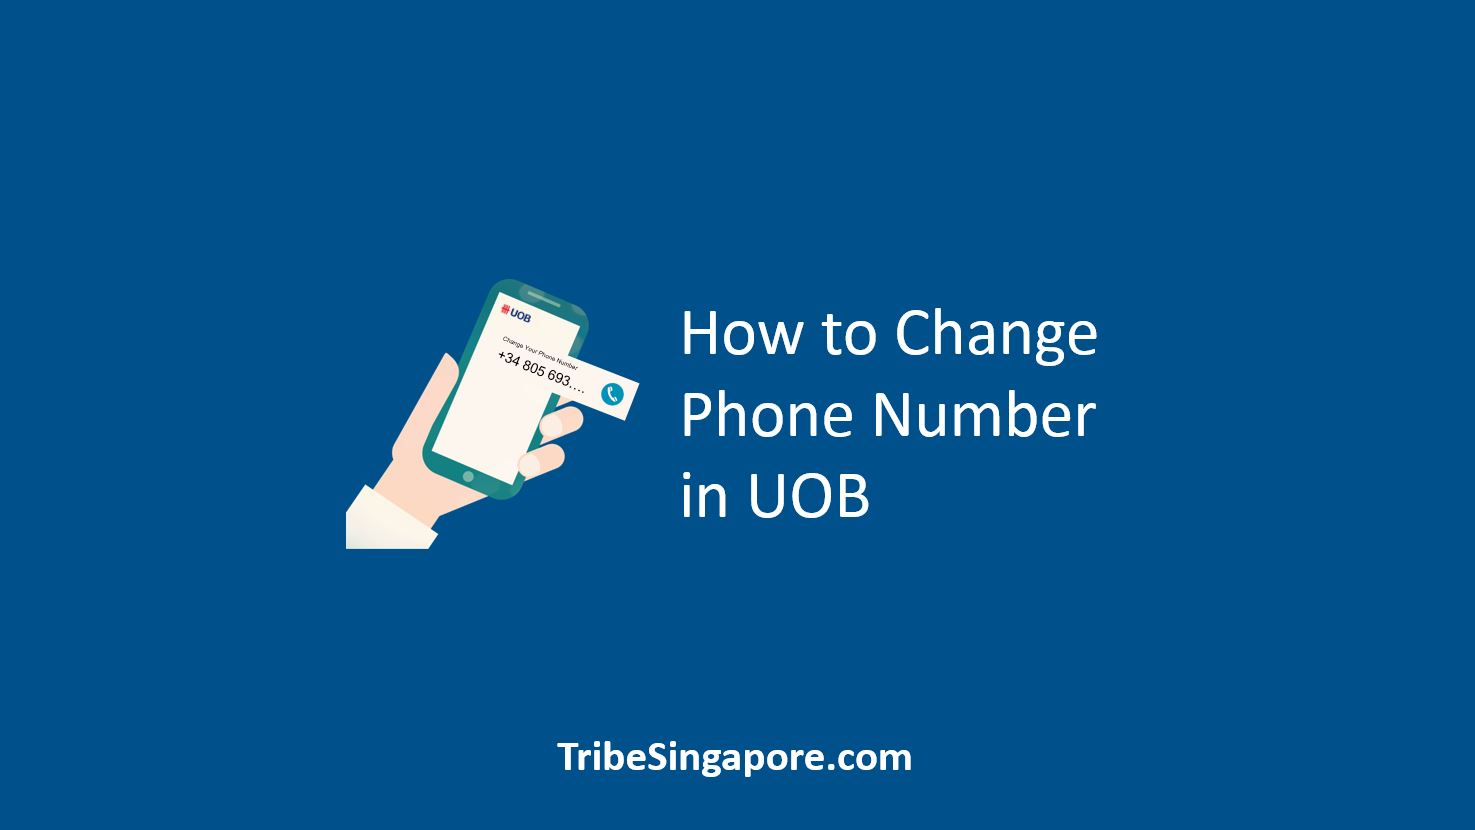 How to Change Phone Number in UOB